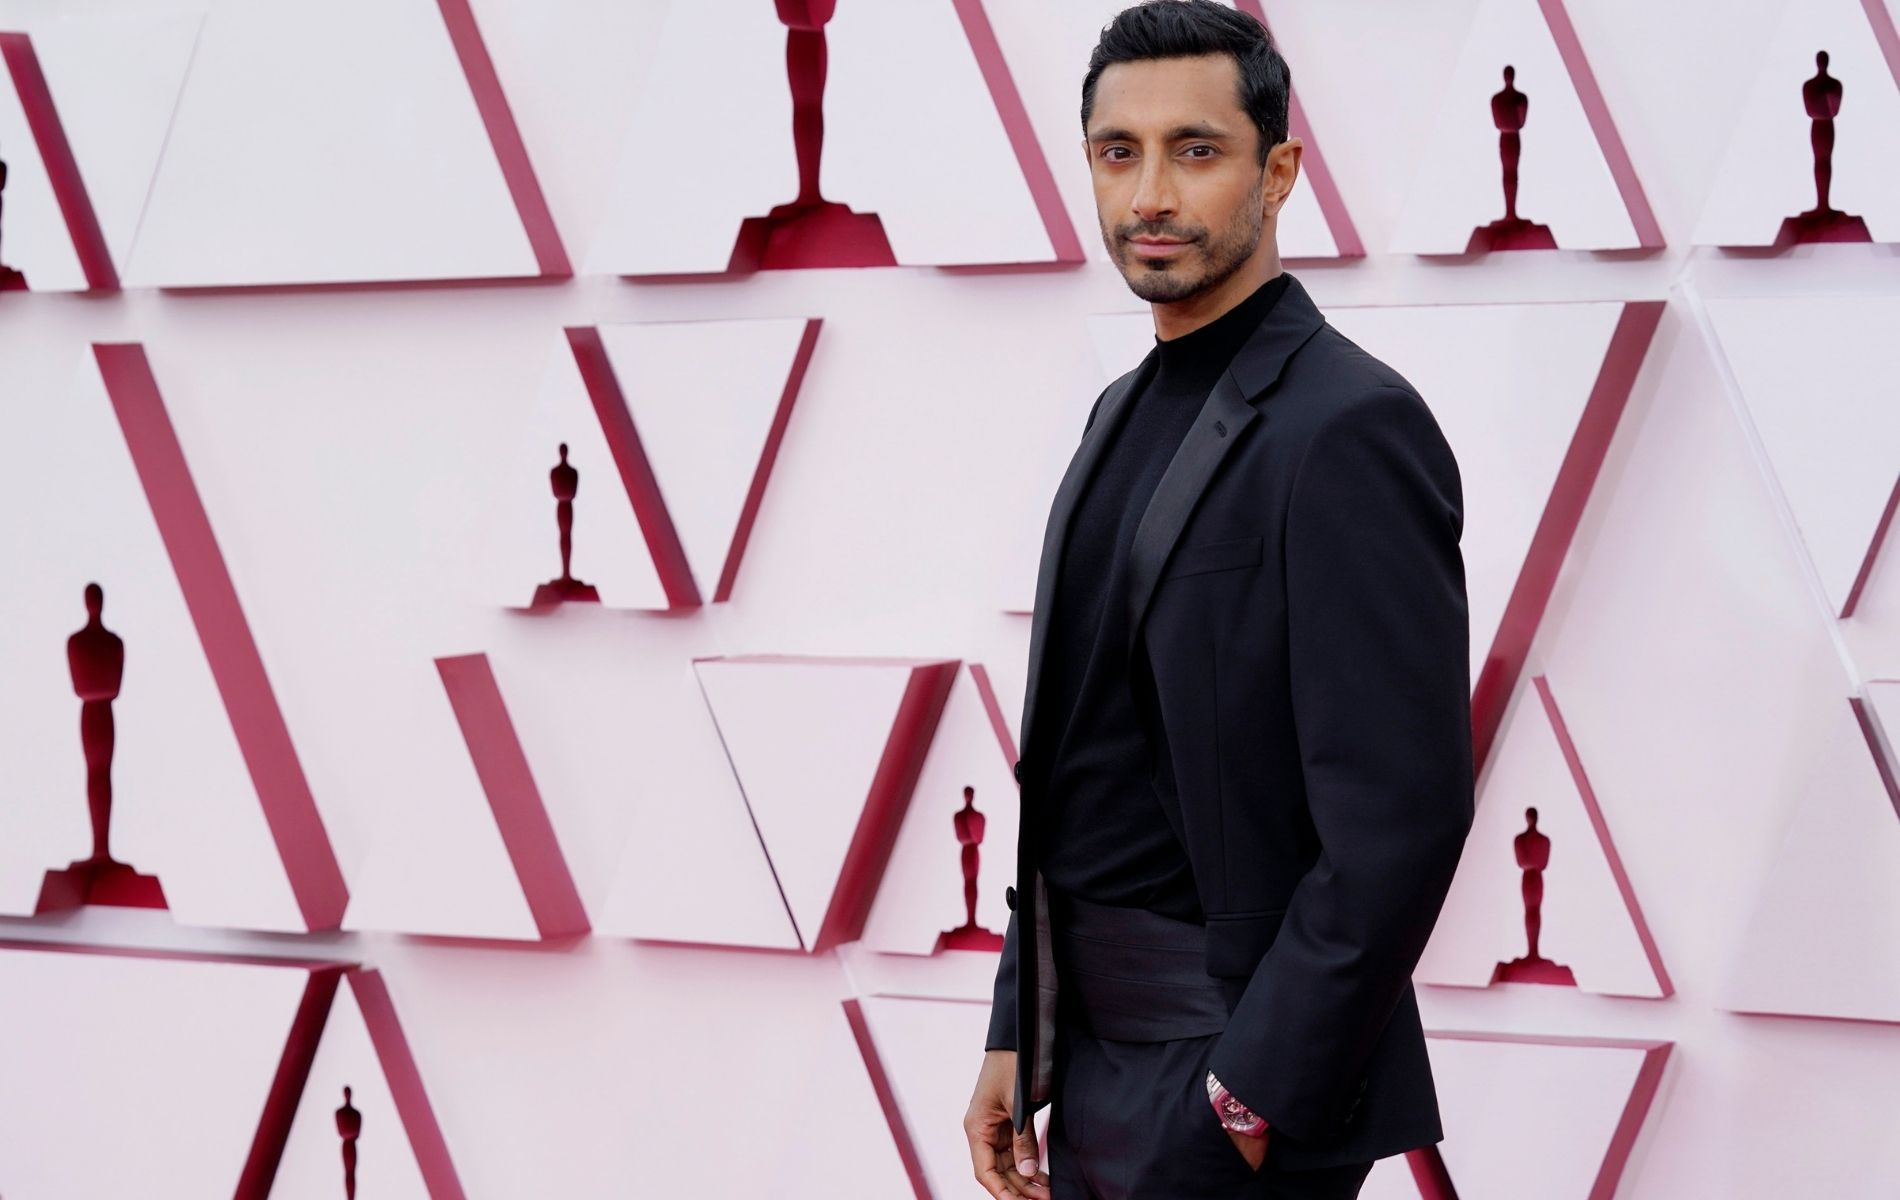 Riz Ahmed at Oscars 2021 red carpet (Photo: Getty Images)